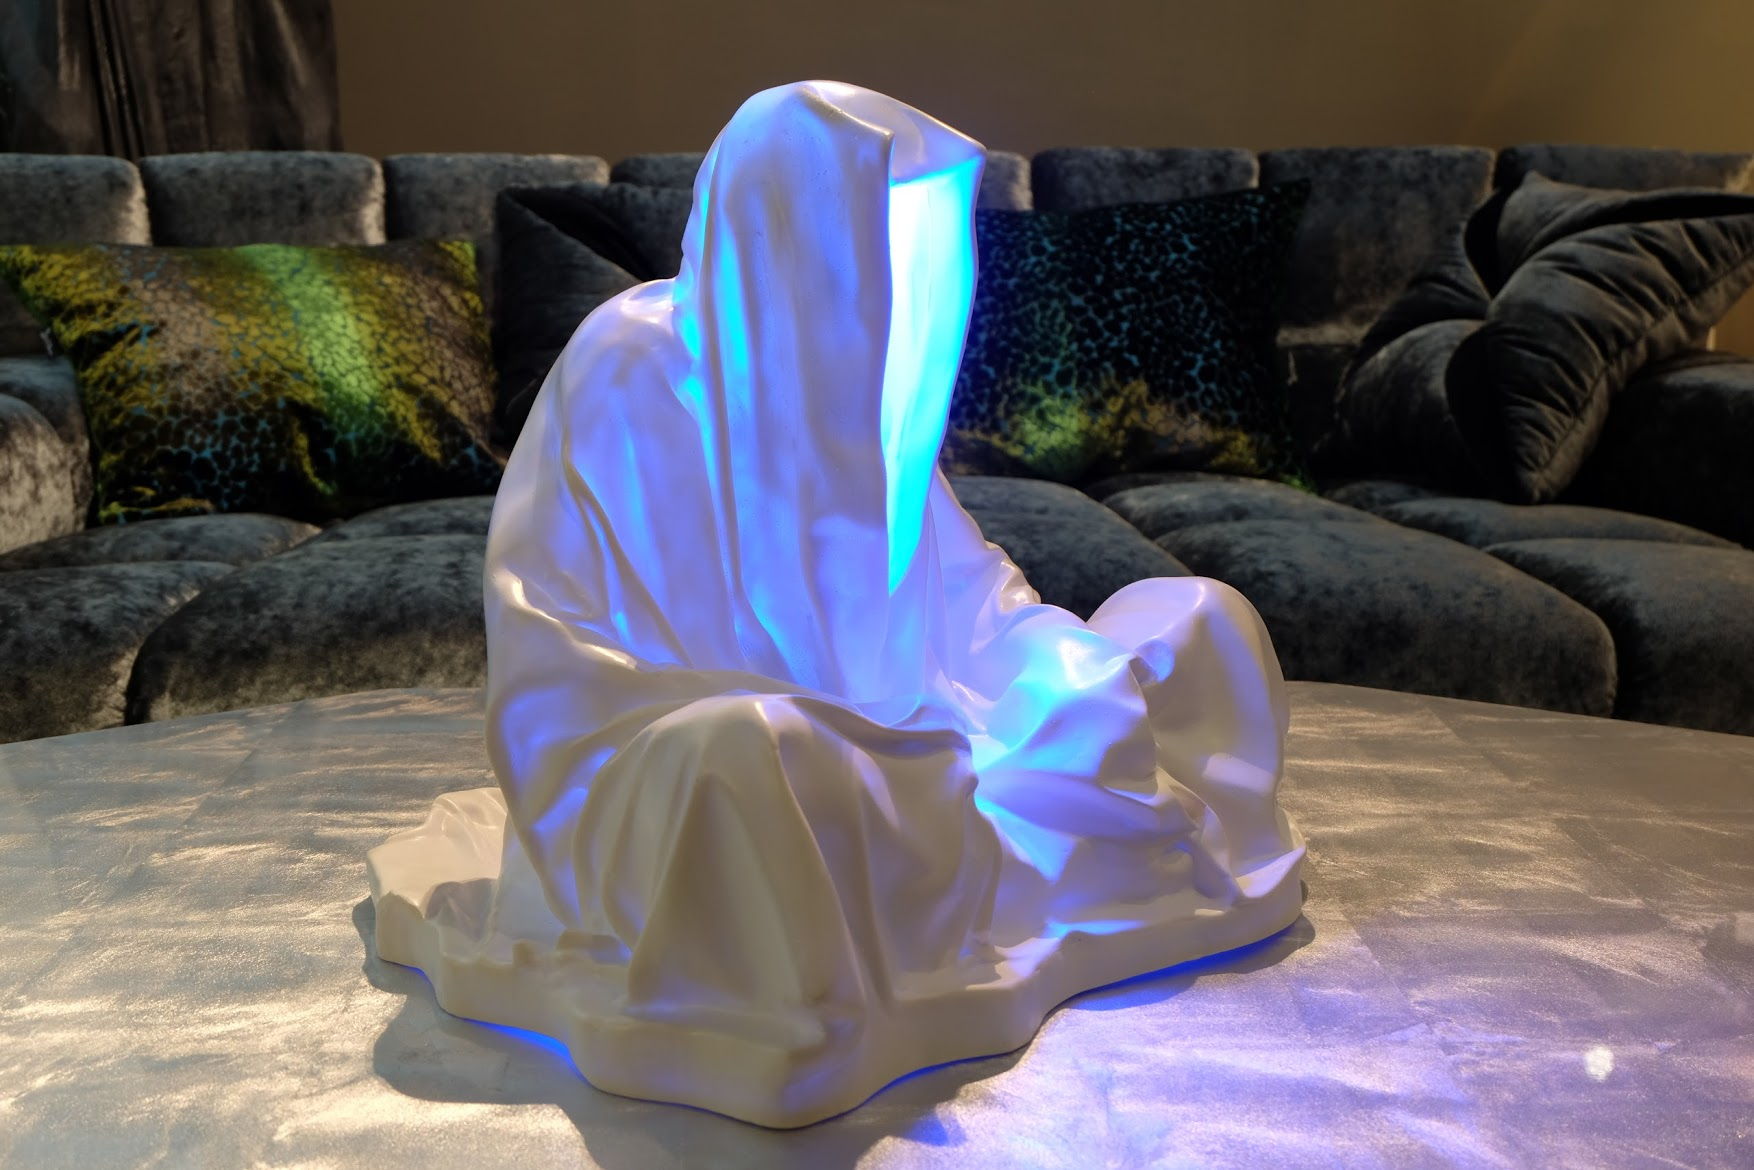 guardians of time manfred kielnhofer linz light art contemporary art sculpture statue modern design lamp light lumina 1870